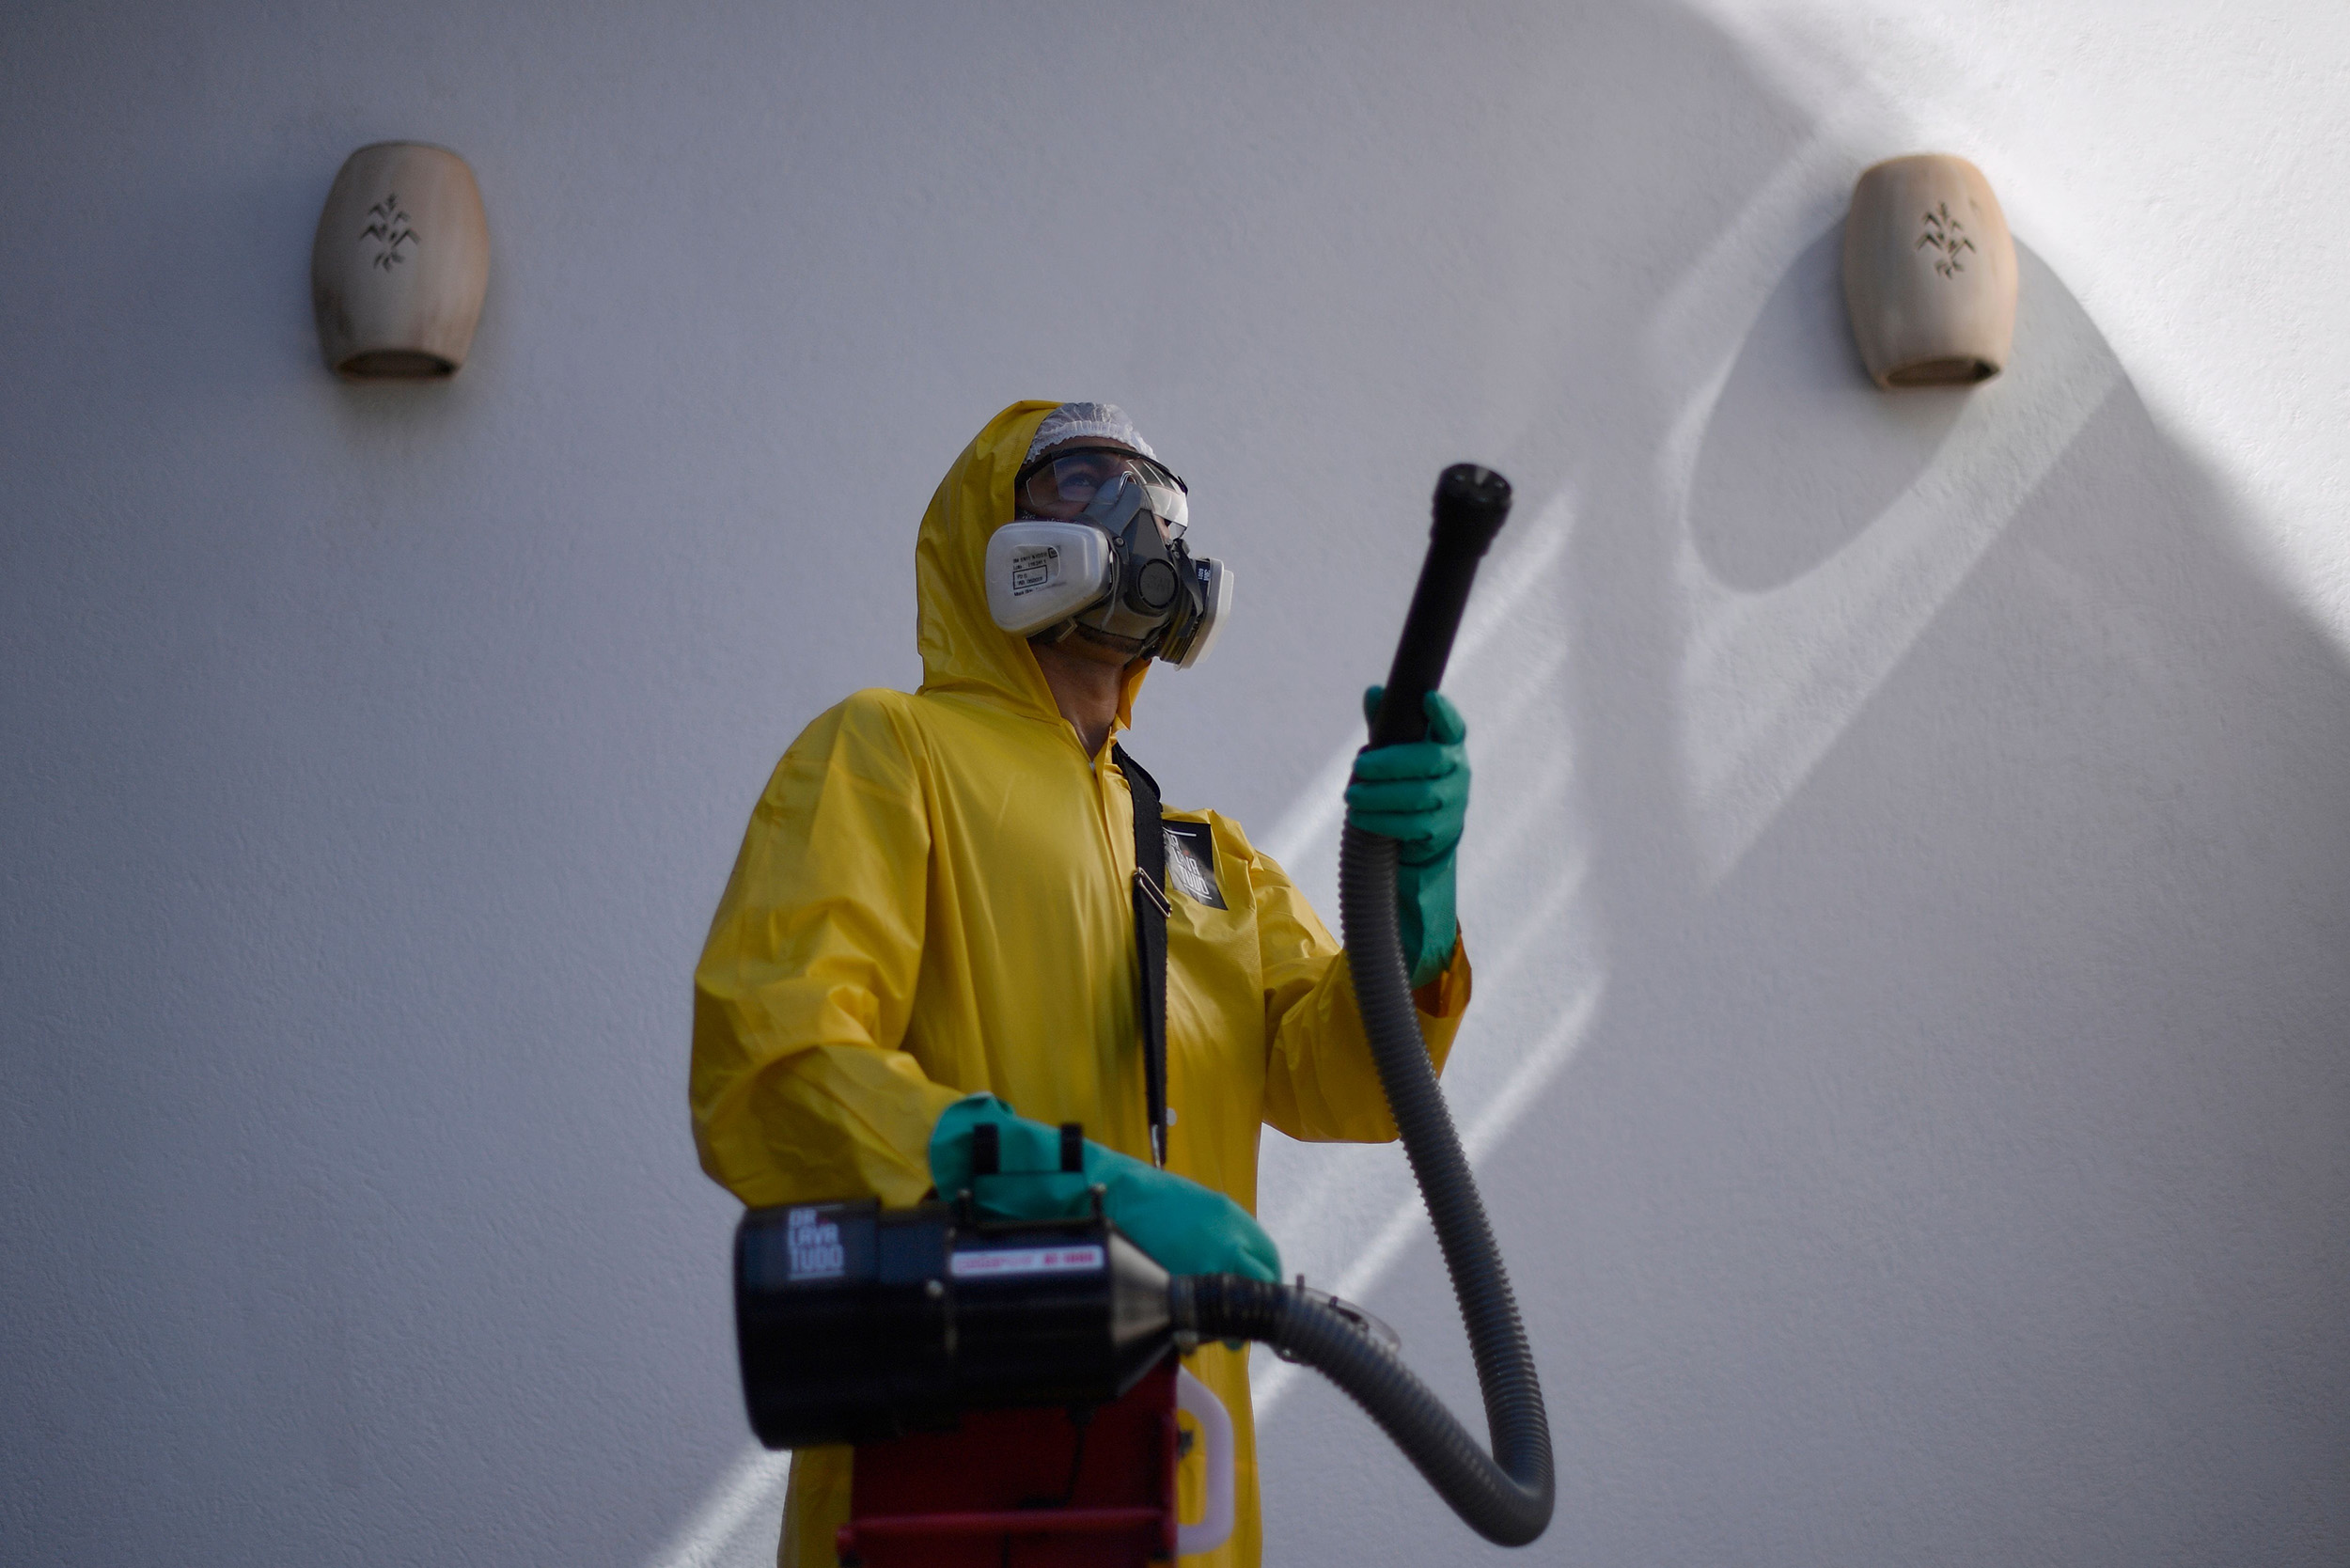 An employee of a private company sanitizes against the spread of the novel coronavirus at a house in Belo Horizonte, Brazil, on June 26.